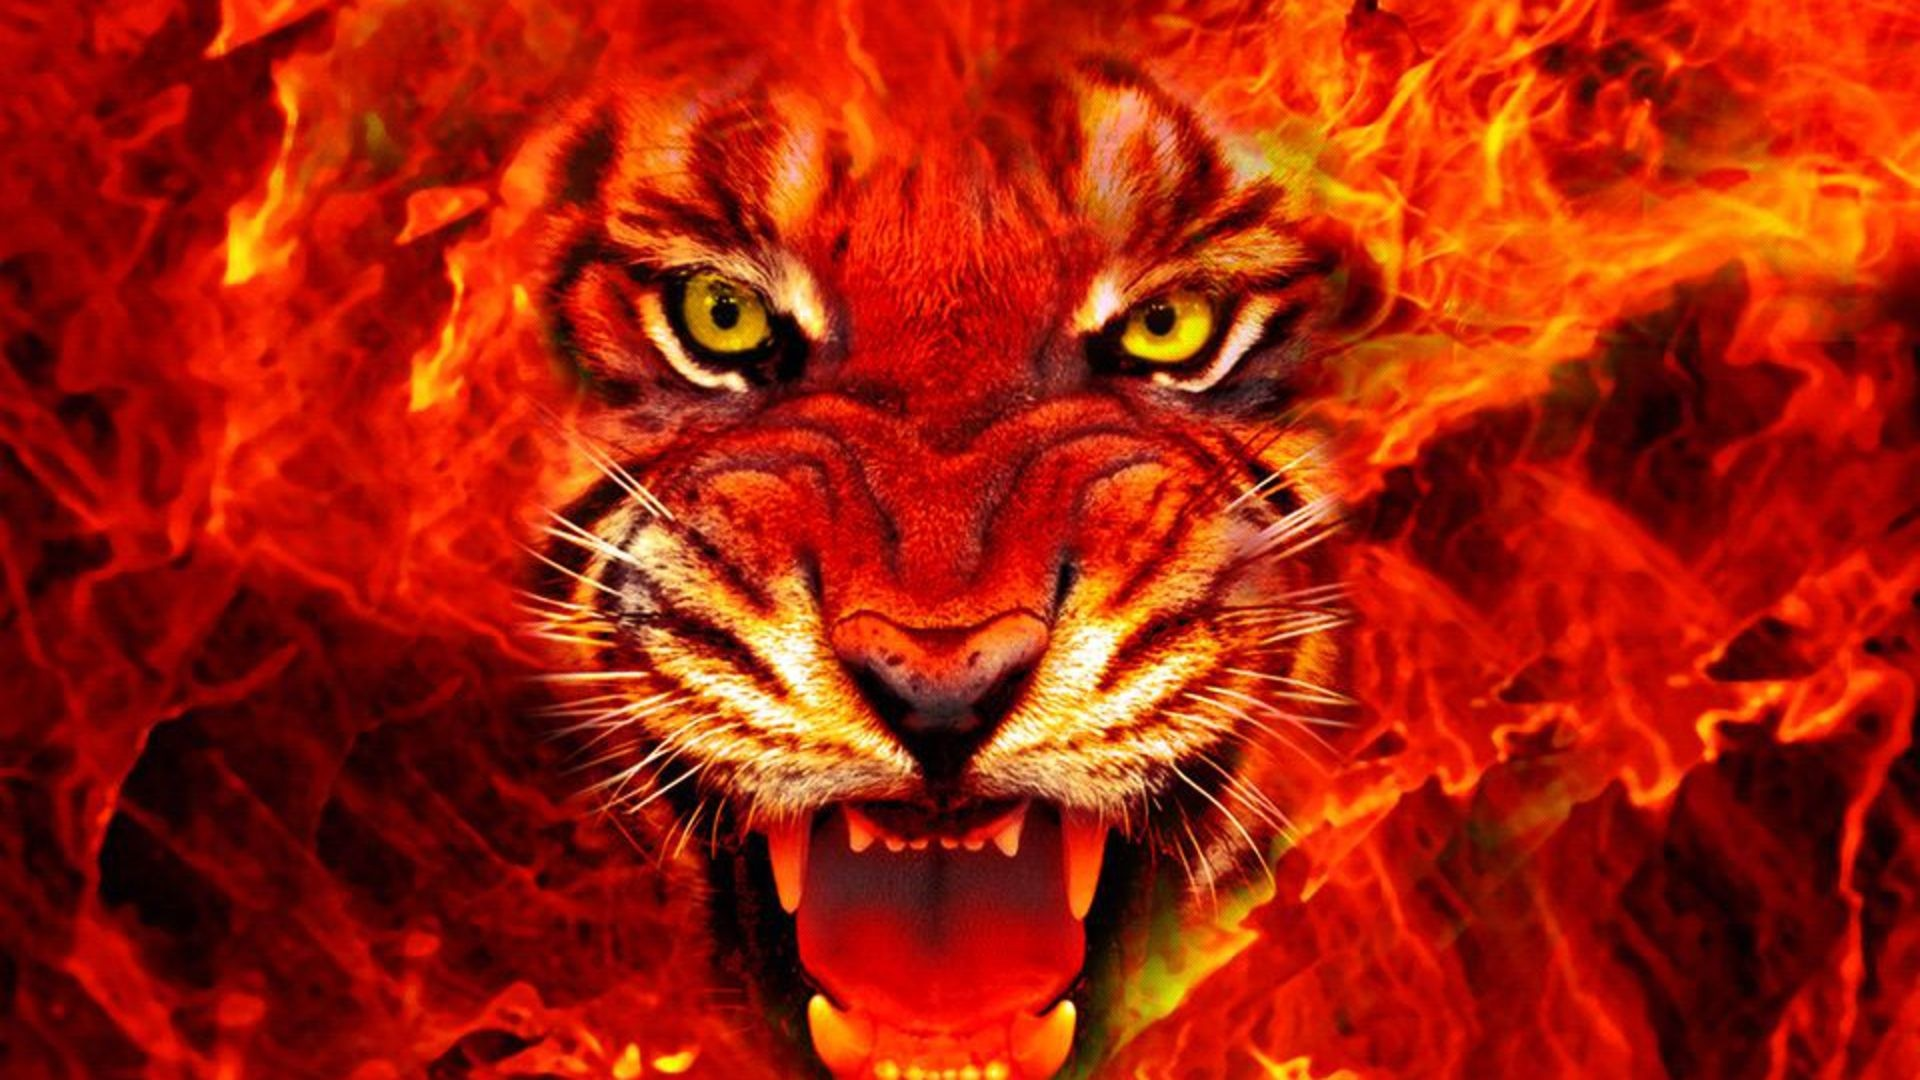 Wallpapers HD Fire King Images Pictures Background Images Mac Pc 1920x1080